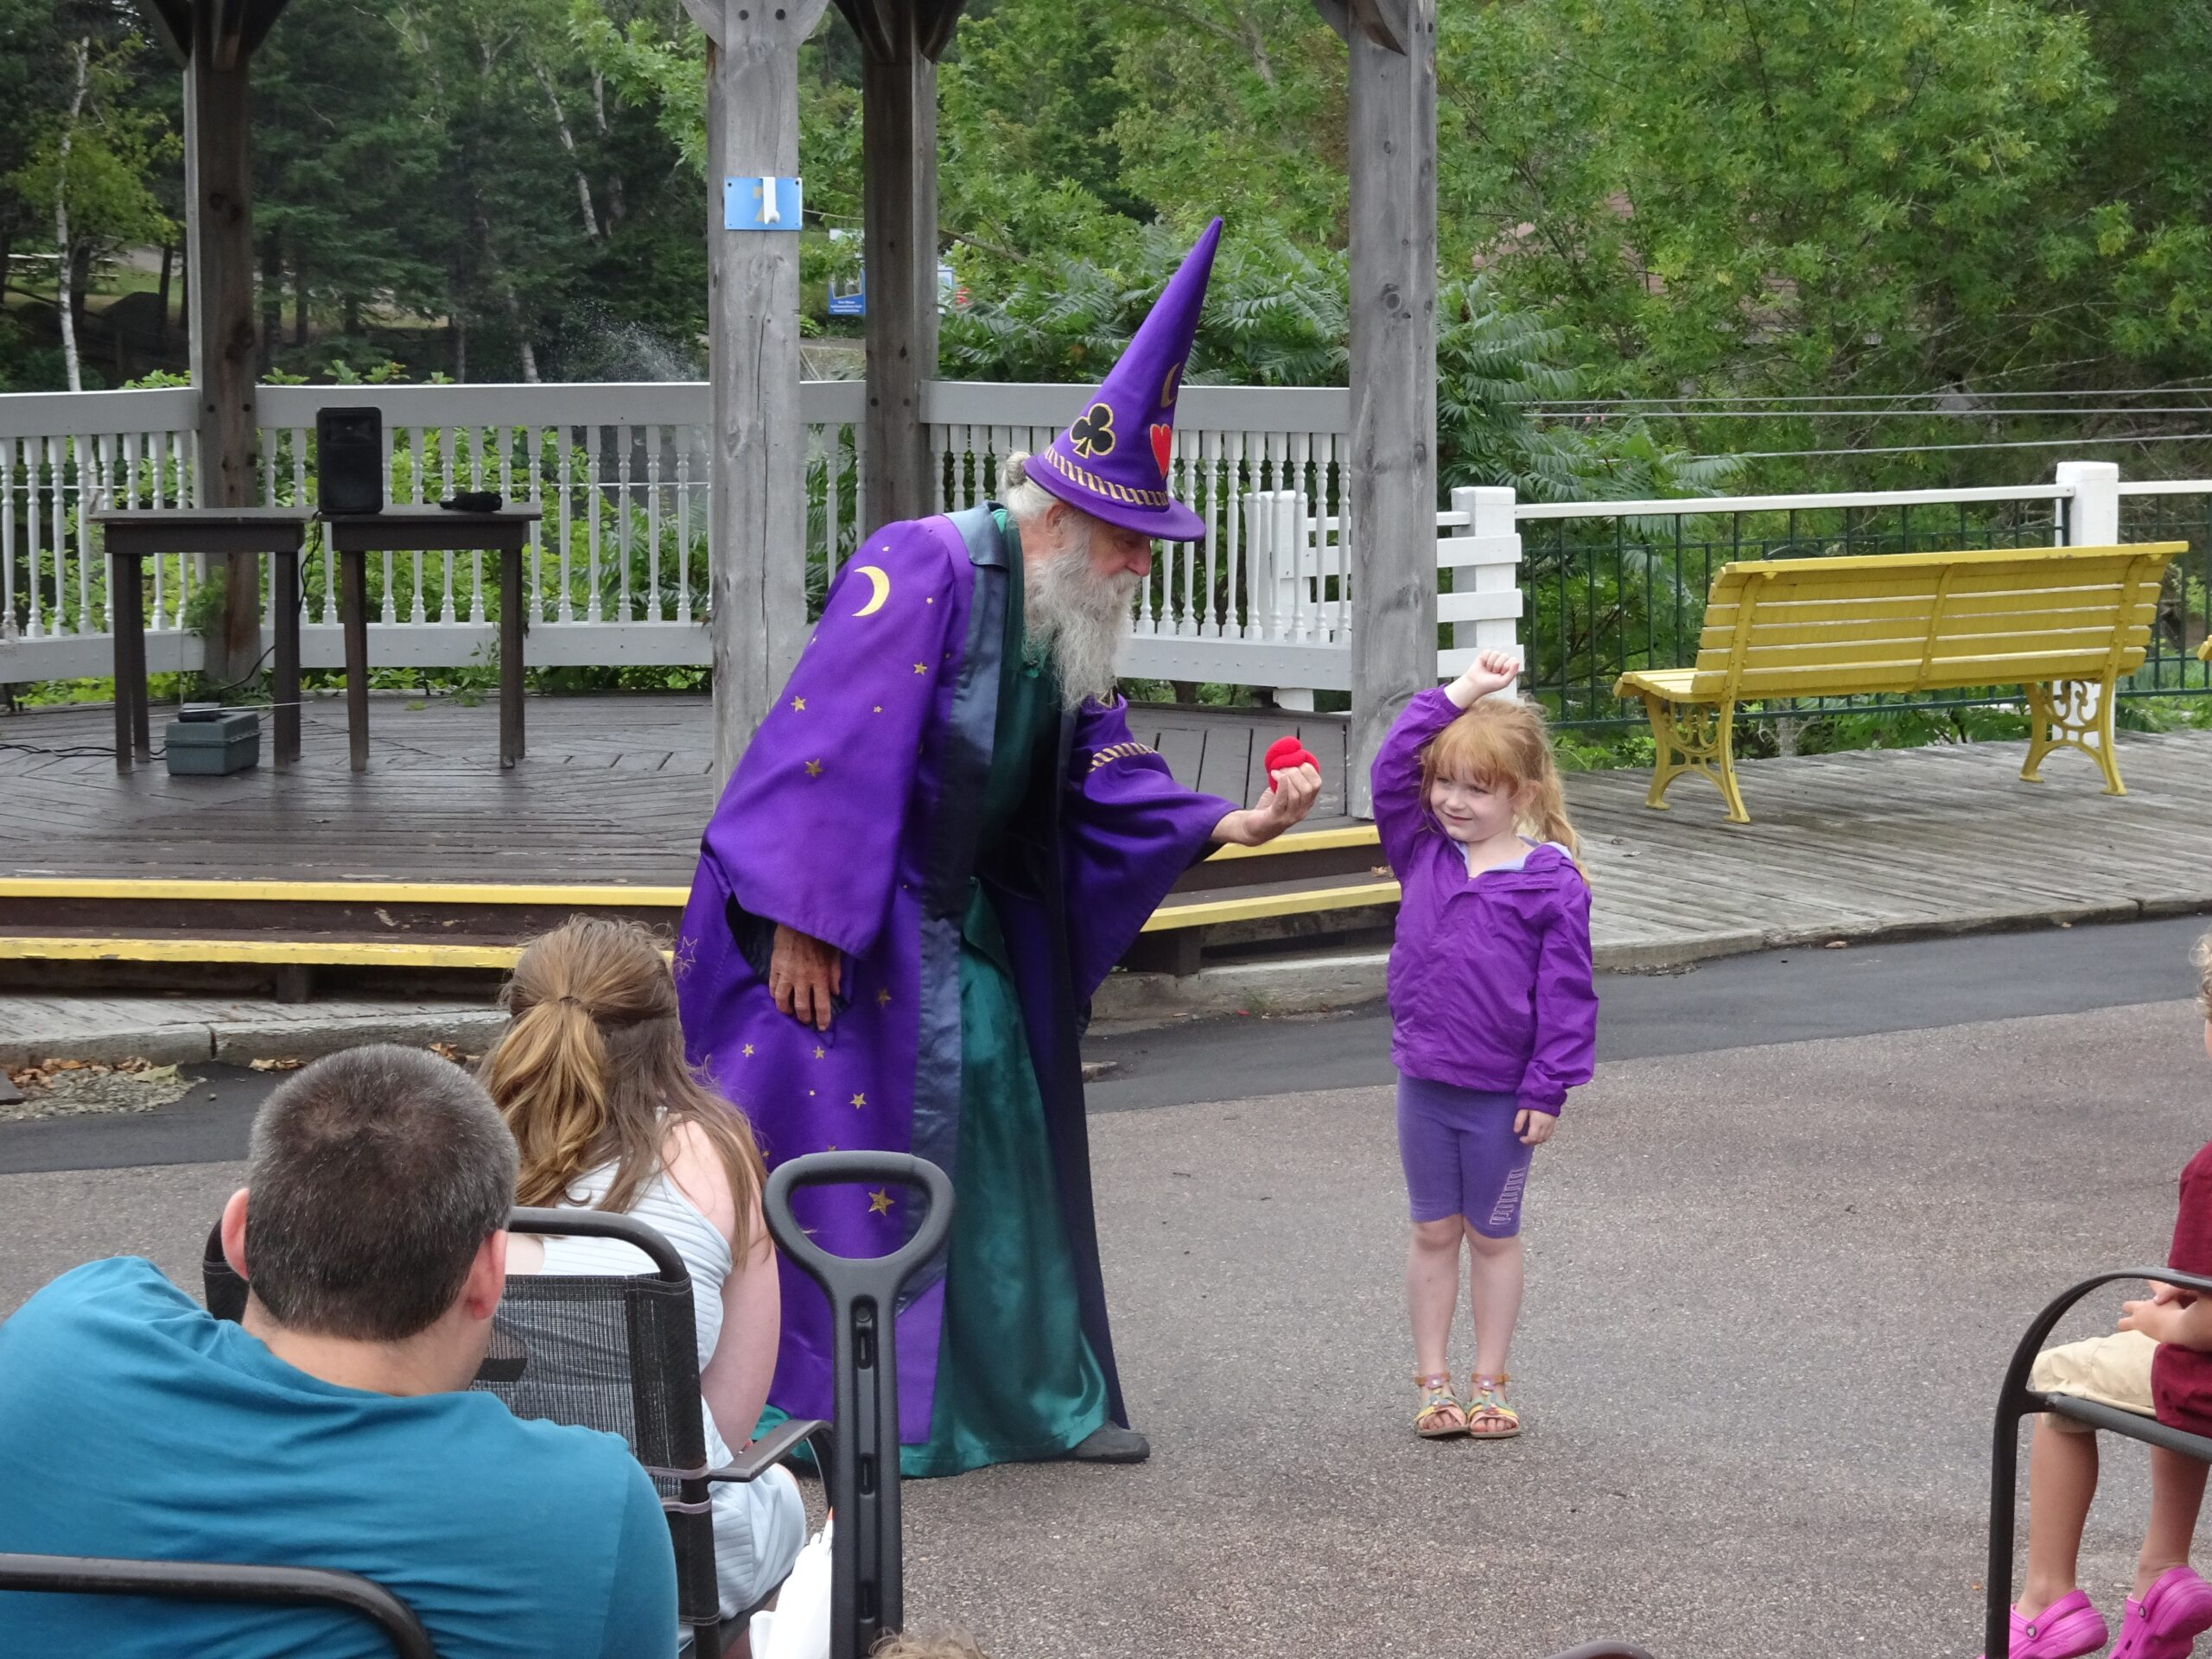 Children's magician in a wizard outfit